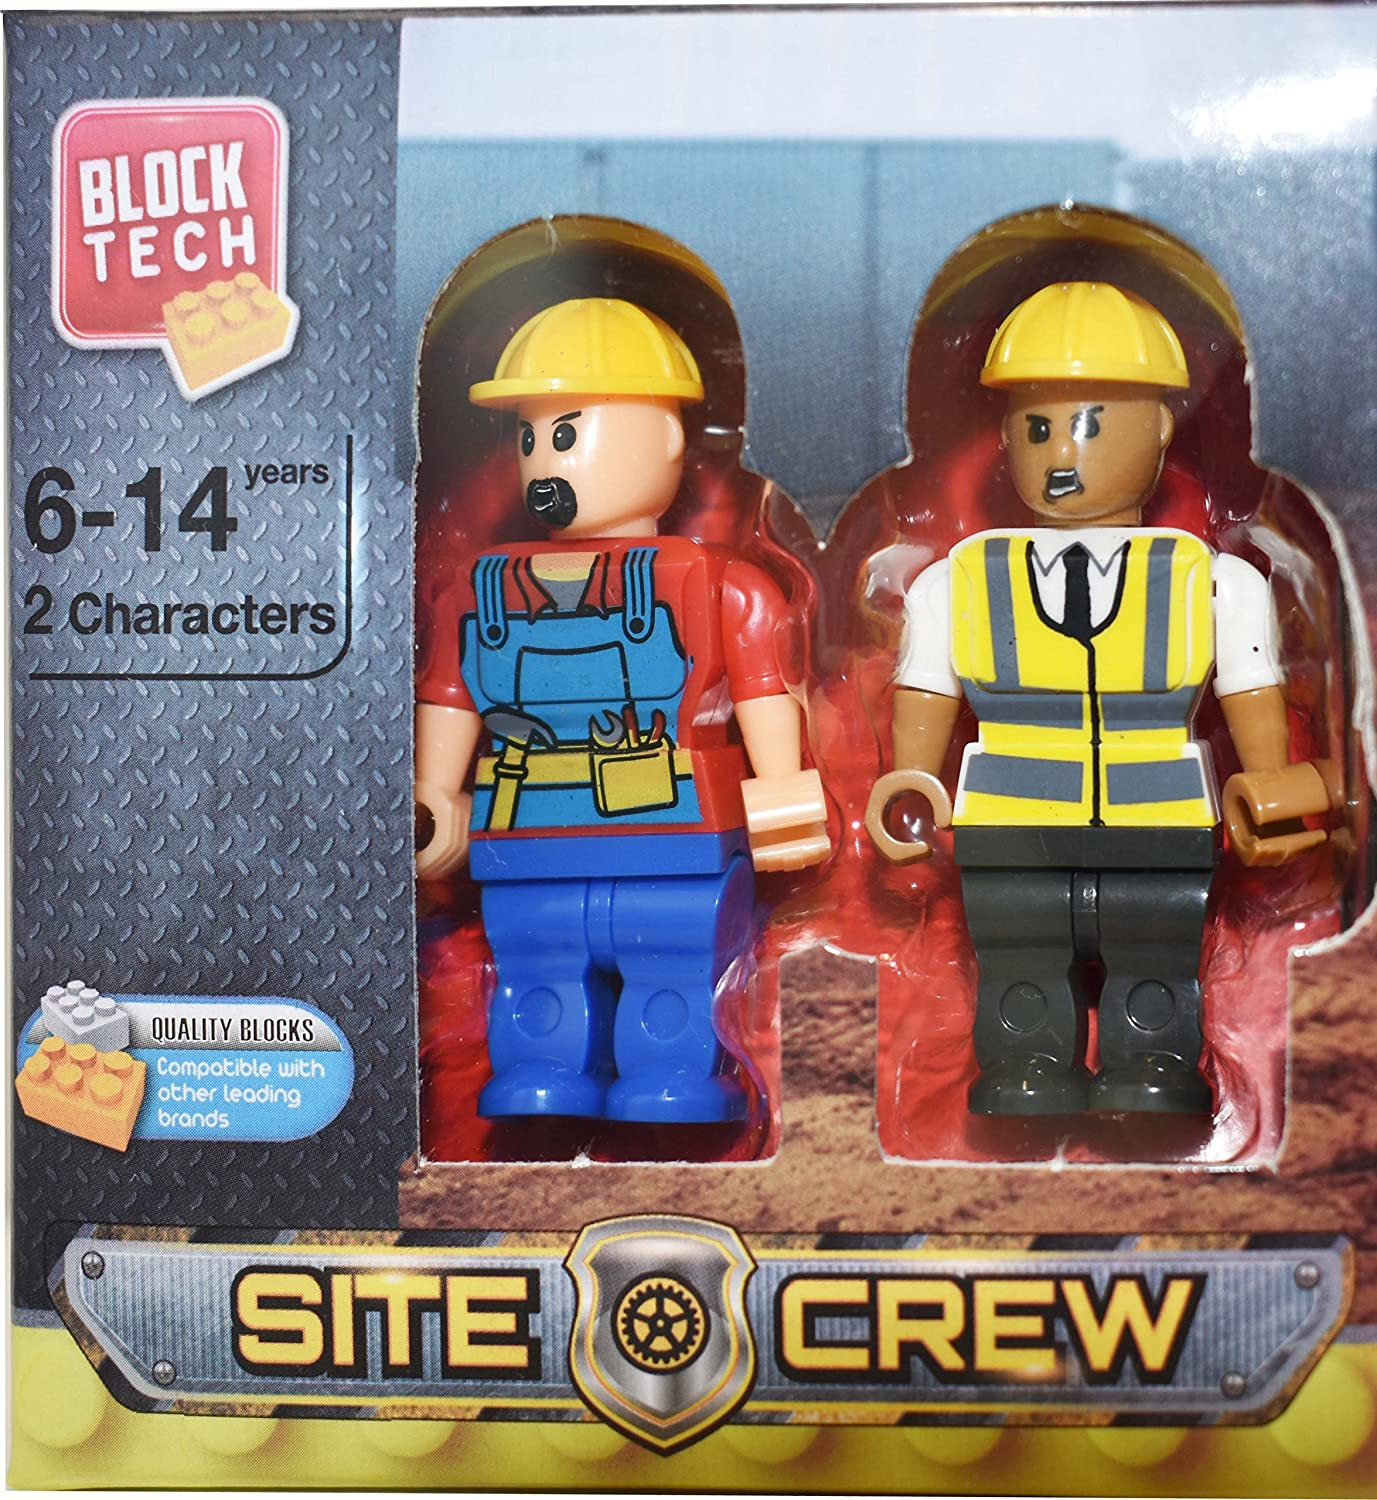 Block Tech Figures Lot of 4 PEOPLE 2PK  COMPATIBLE w//OTHER BRANDS 2